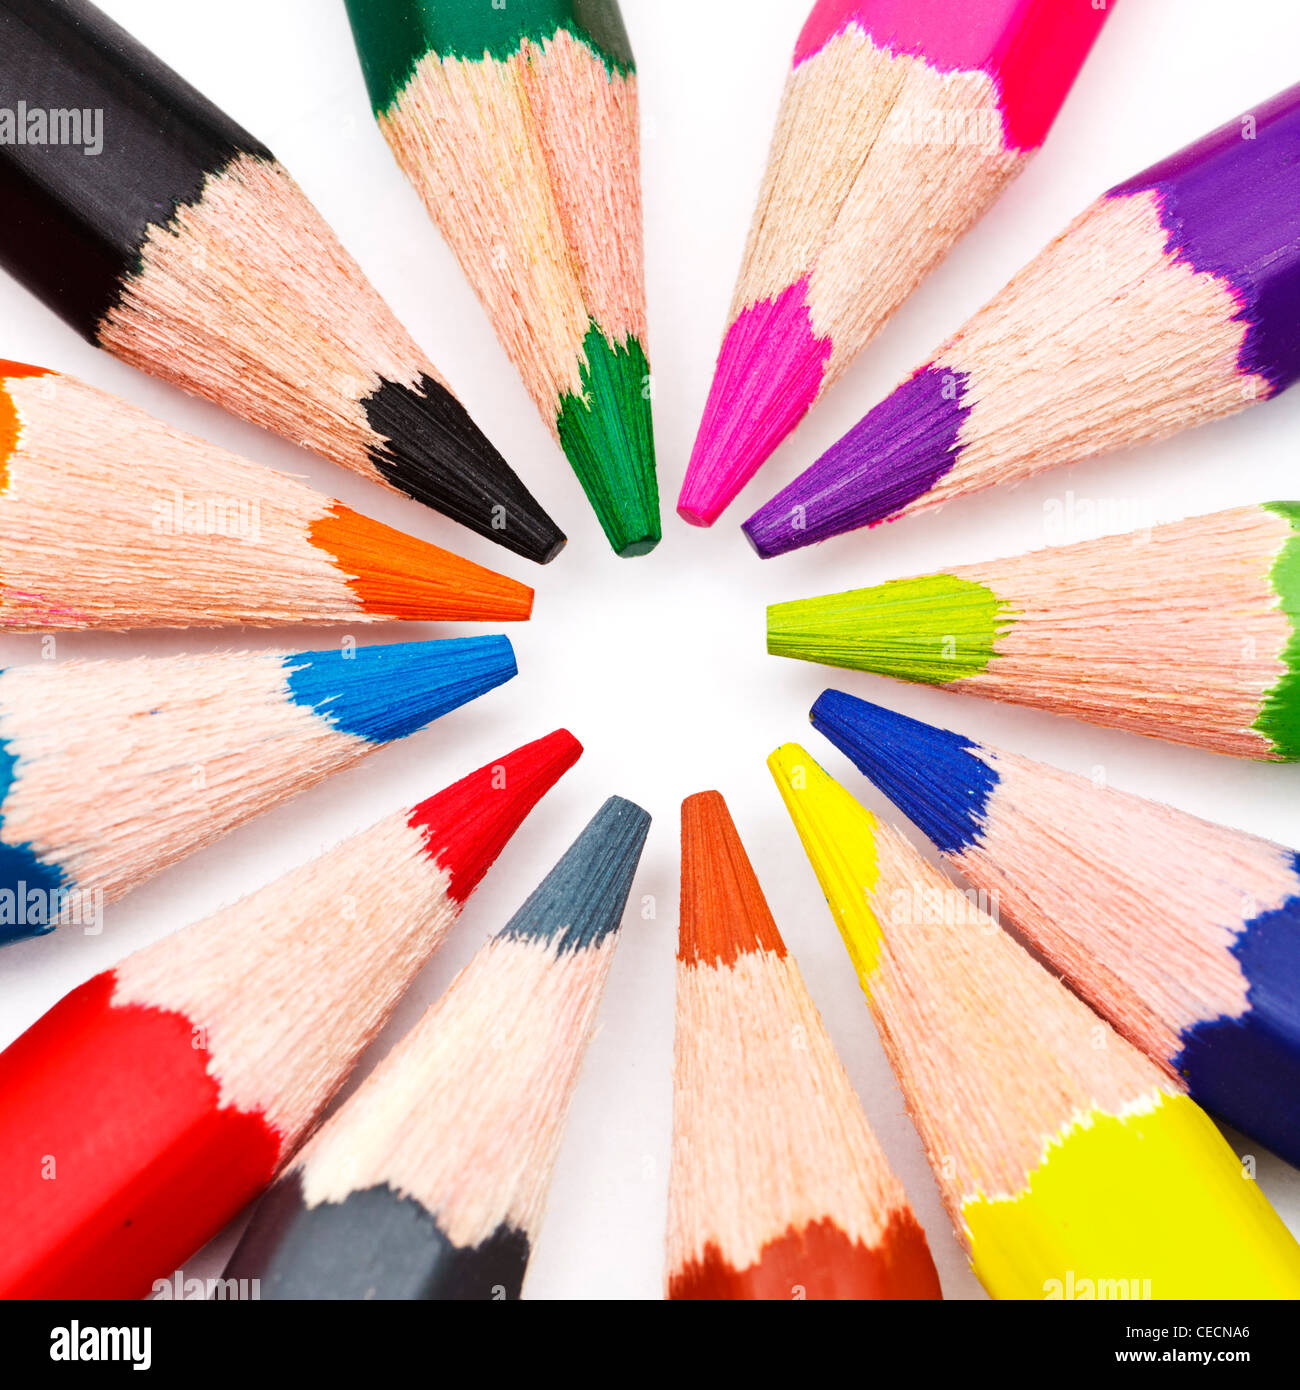 Group of coloured pencils - Stock Image